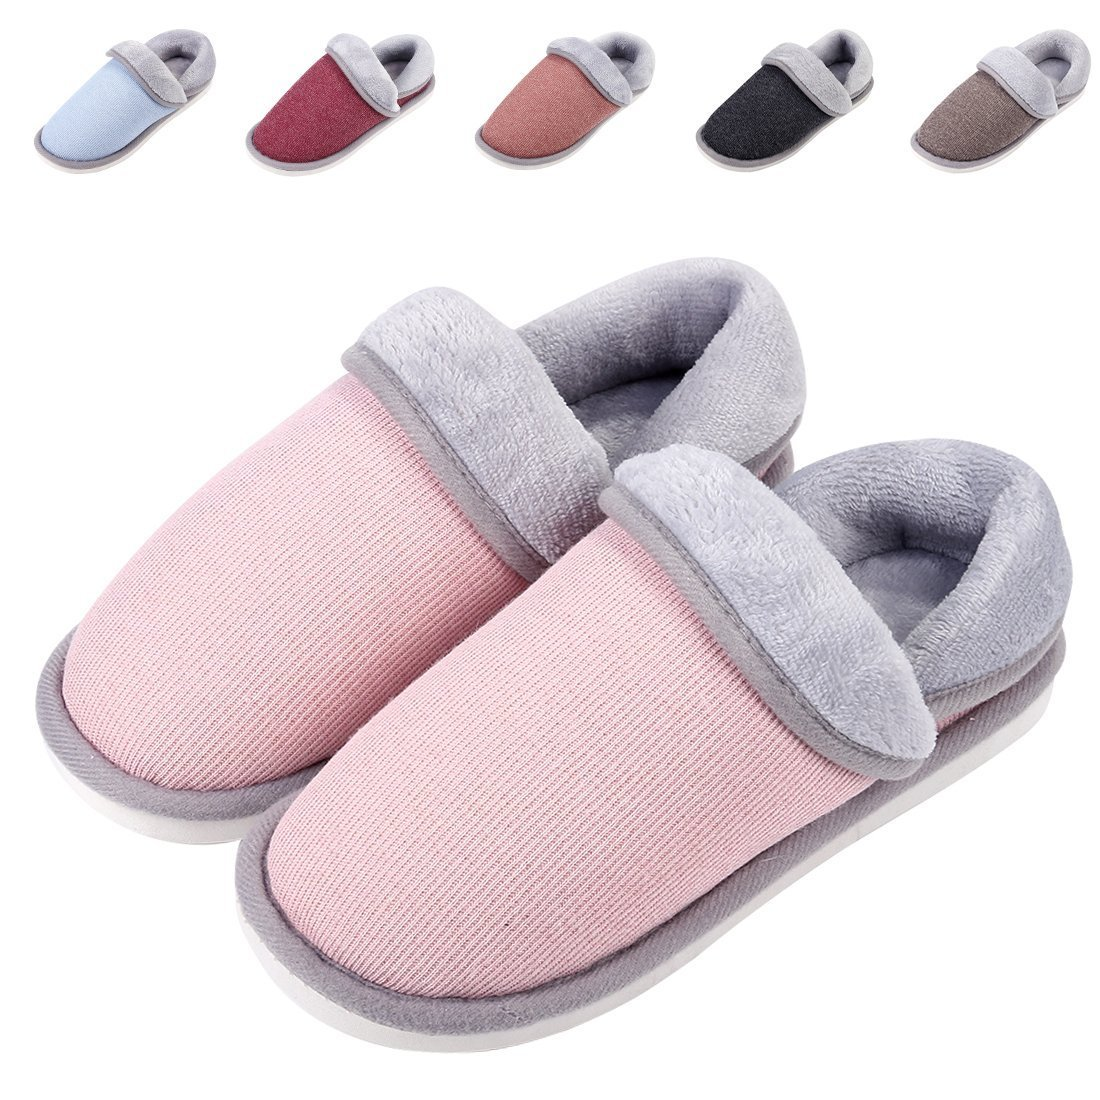 Leisurely Pace Women Indoor Winter Warm Home Slippers Comfort Cotton Non Slip Closed Back House Shoes